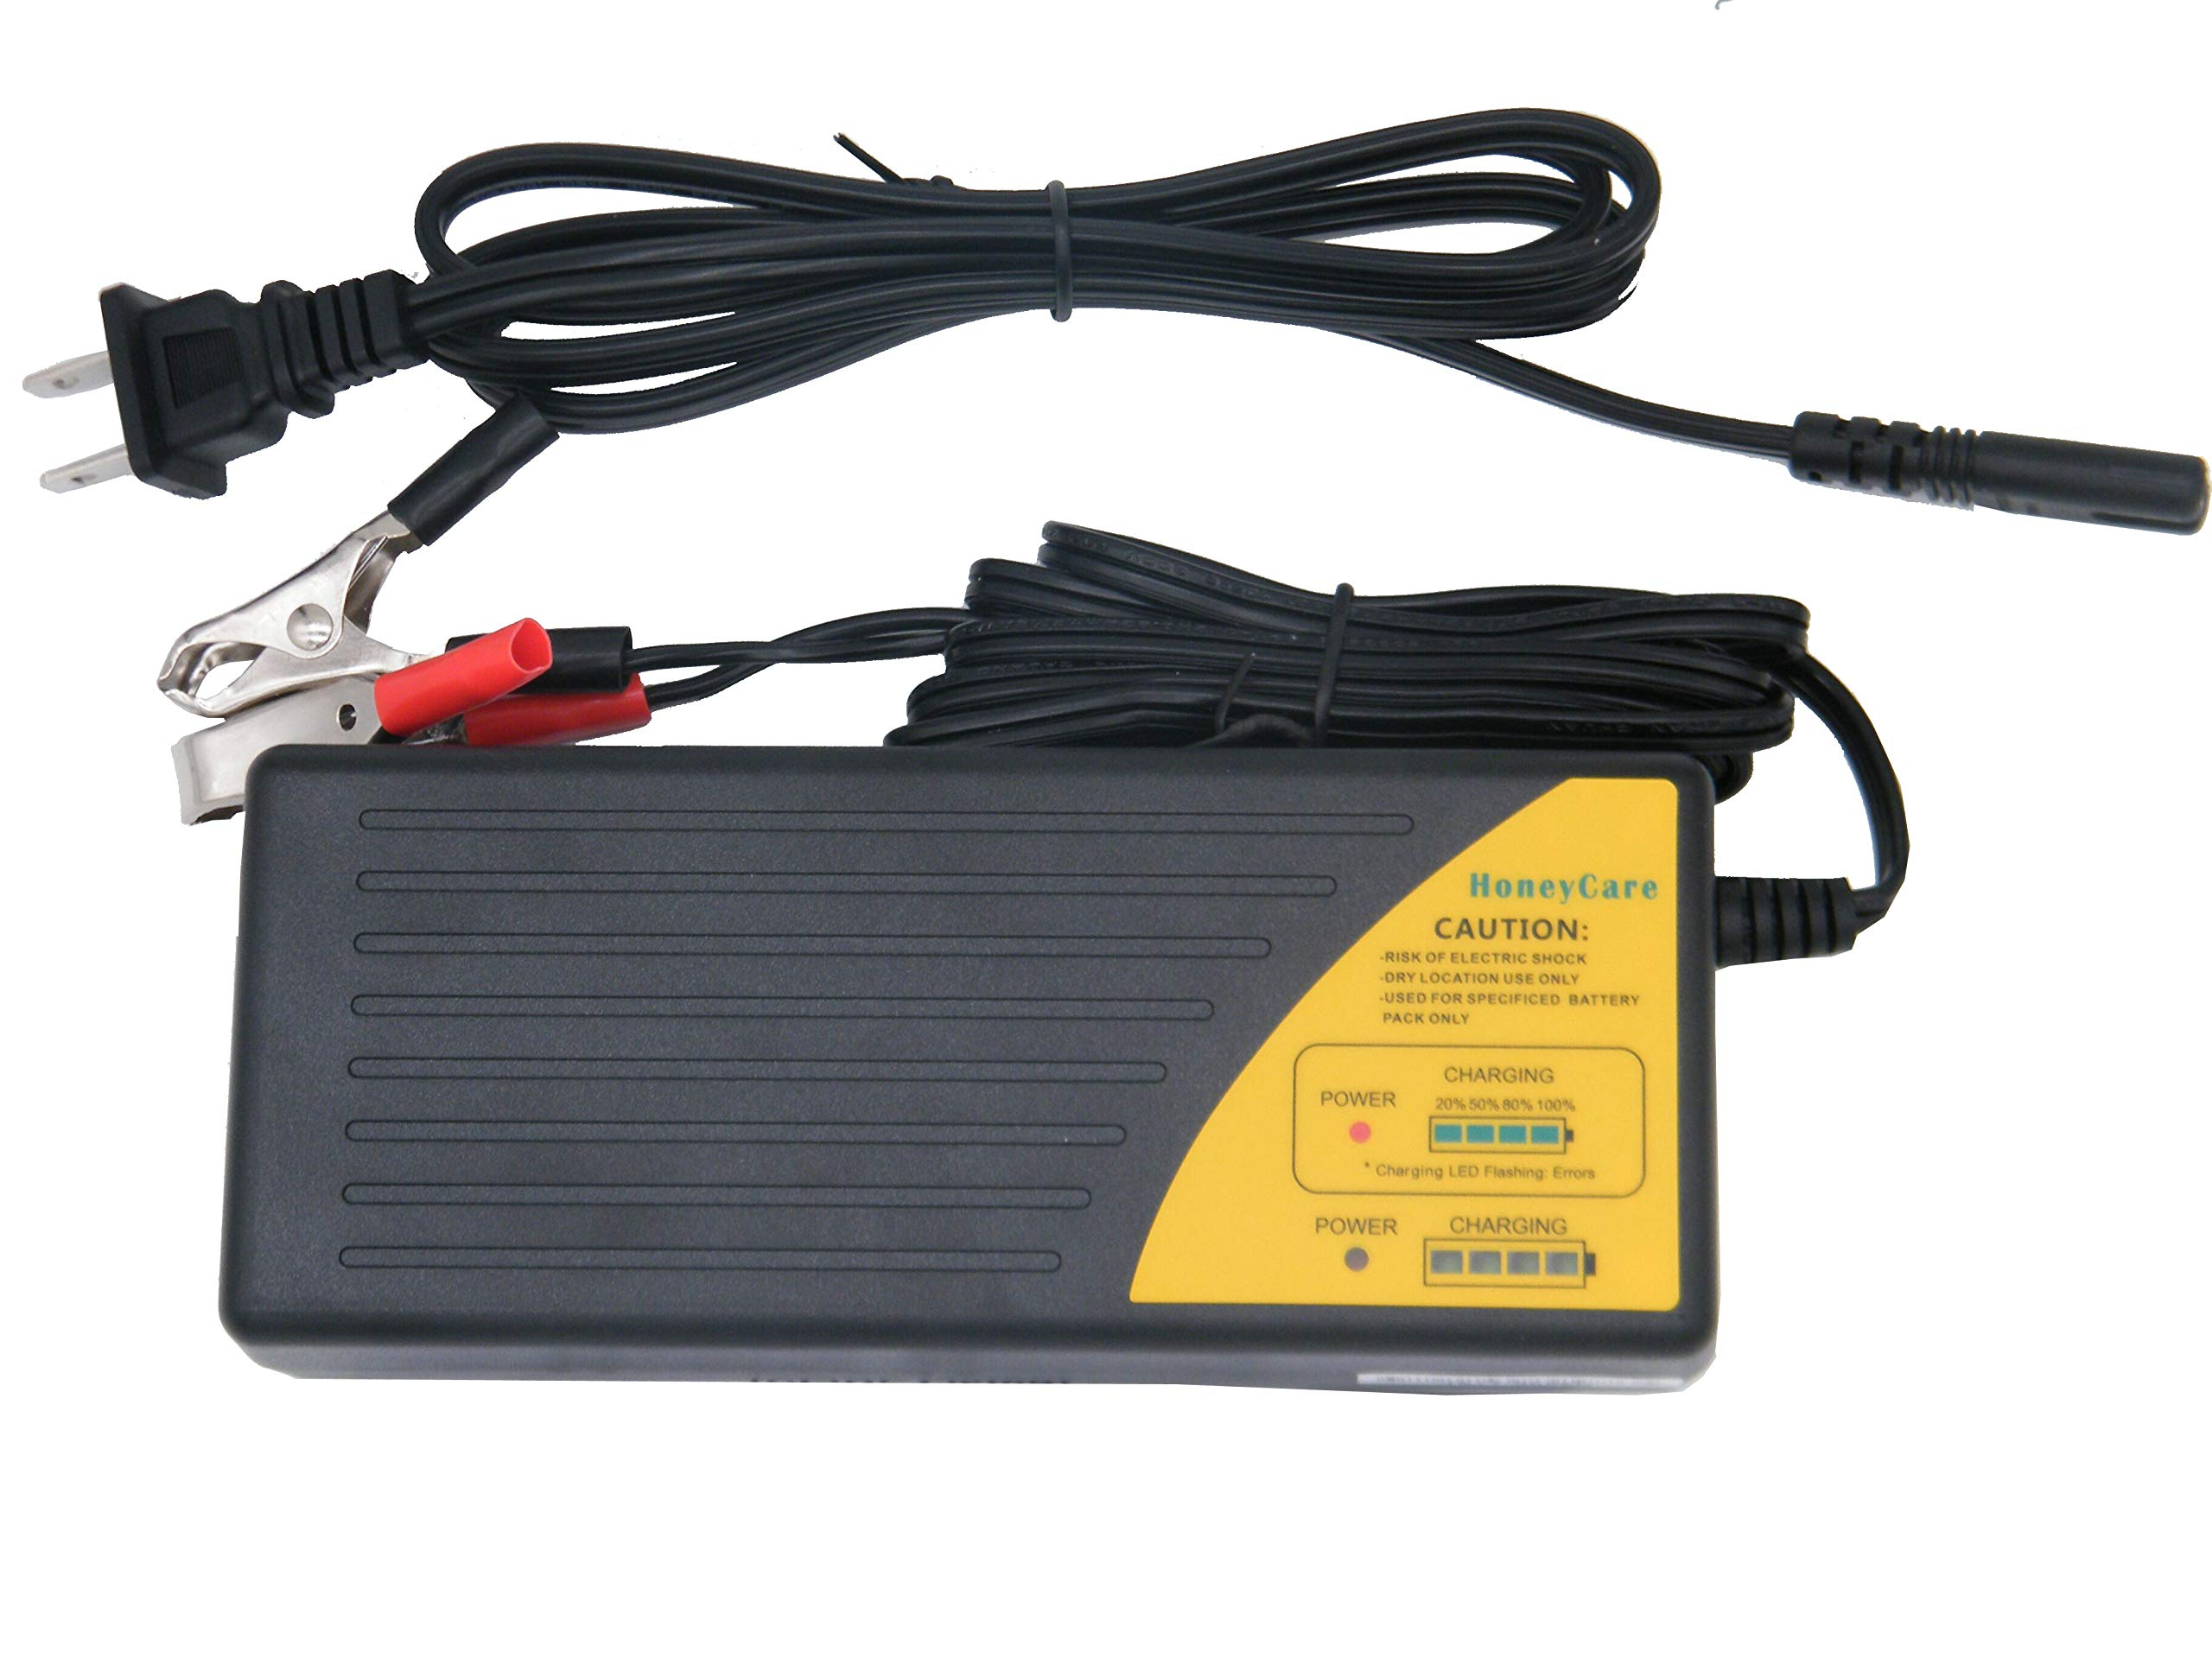 HoneyCare 36V Sealed Lead Acid Battery Charger,36V SLA AGM Gel VRLA Battery Charger for Scooter,Electric Bike Golf Cart,ATV